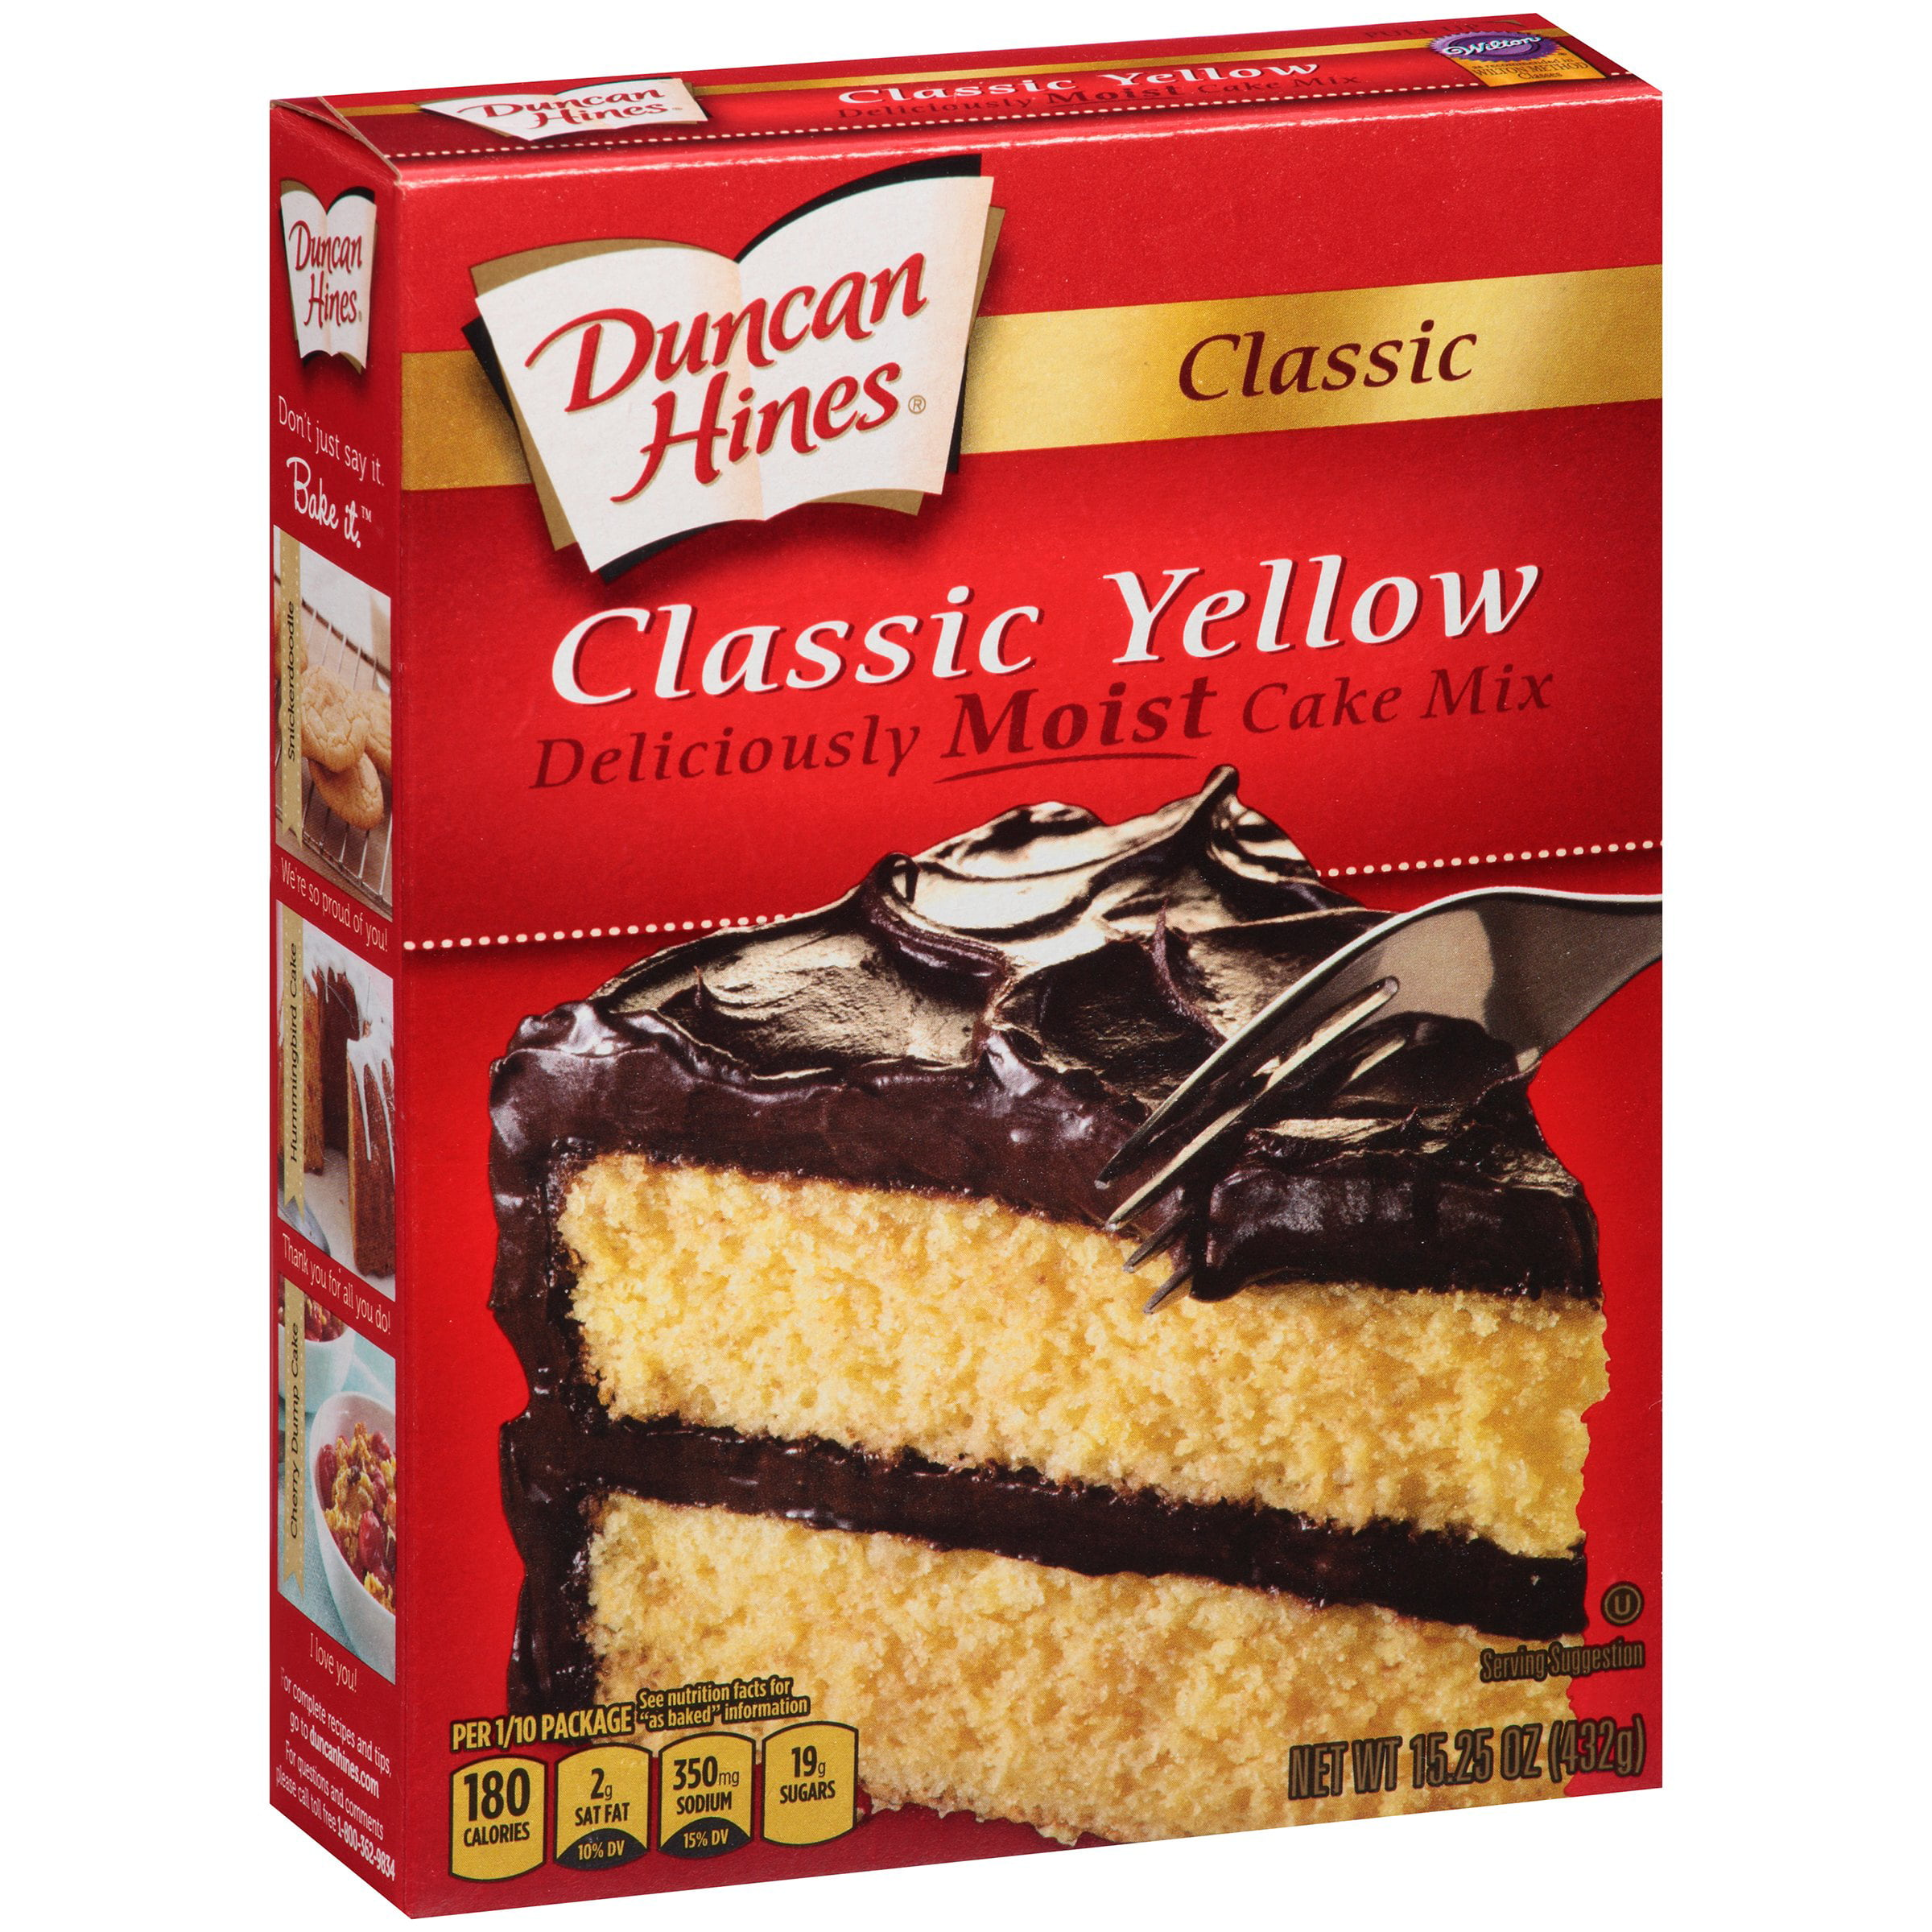 Duncan Hines Classic Yellow Deliciously Moist Cake Mix, 15.25 oz by Pinnacle Foods Group LLC